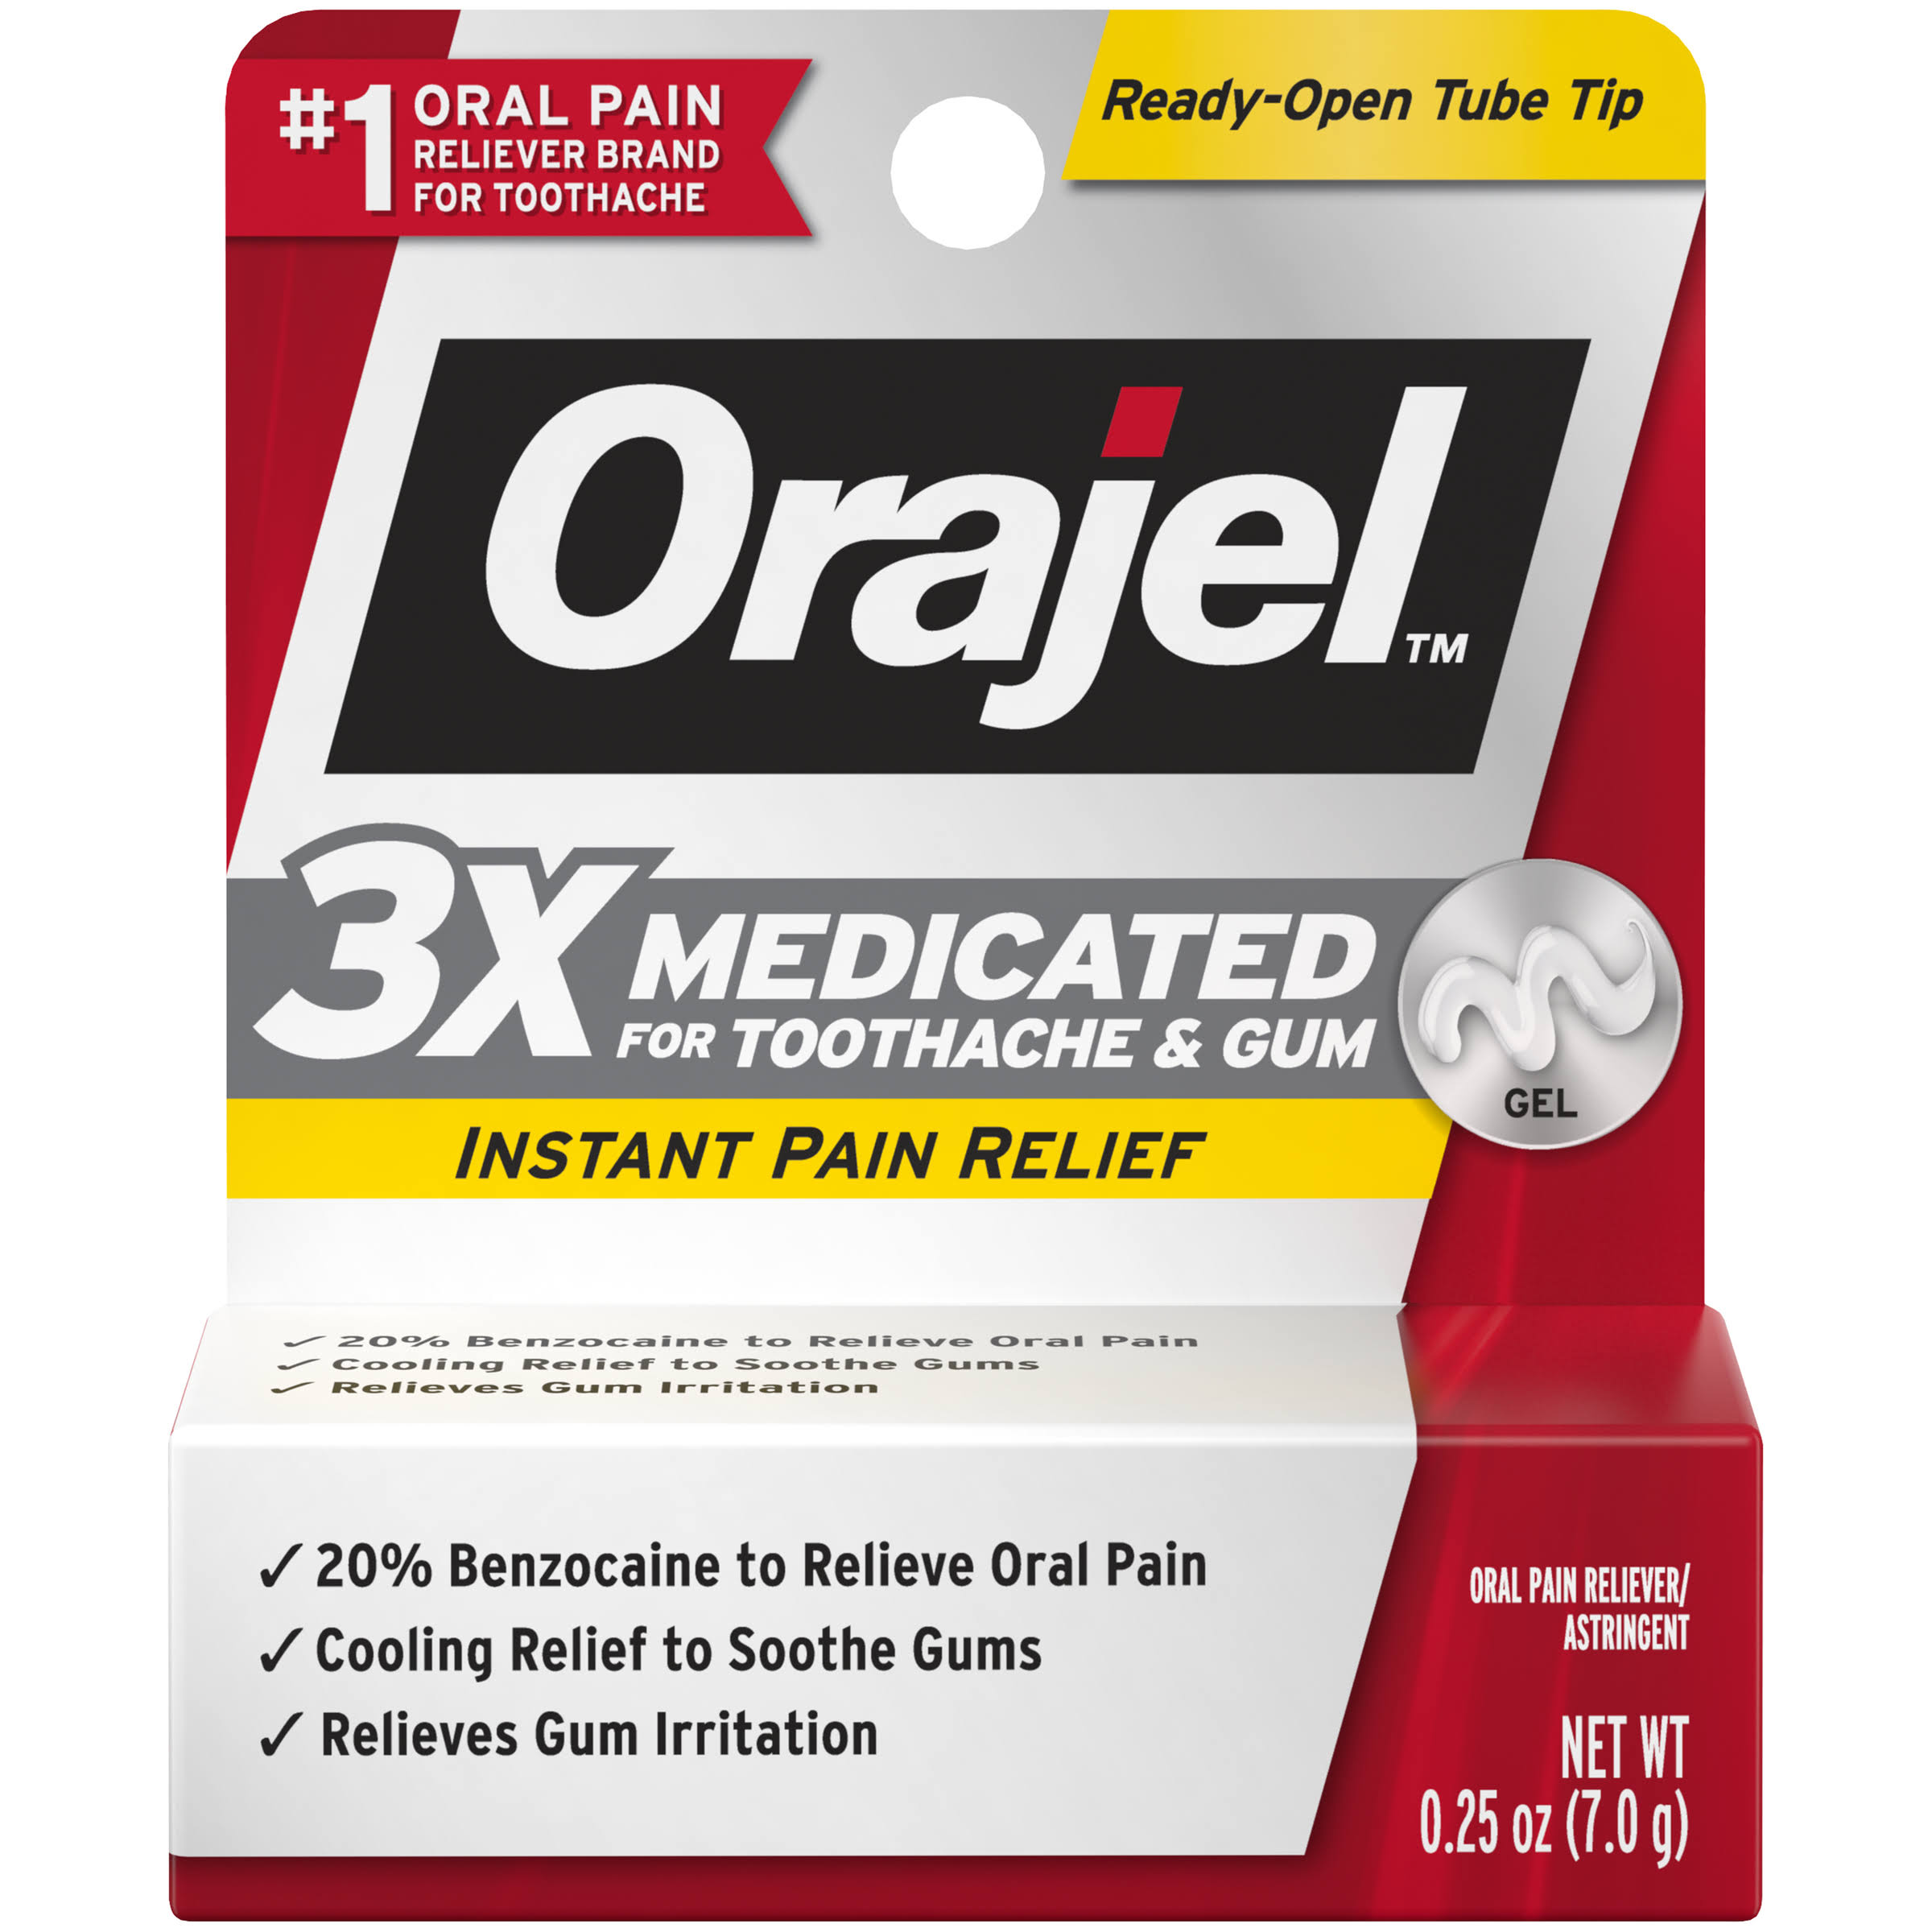 Orajel Maximum Strength Toothache Pain Relief Double Medicated Gel - 0.25oz